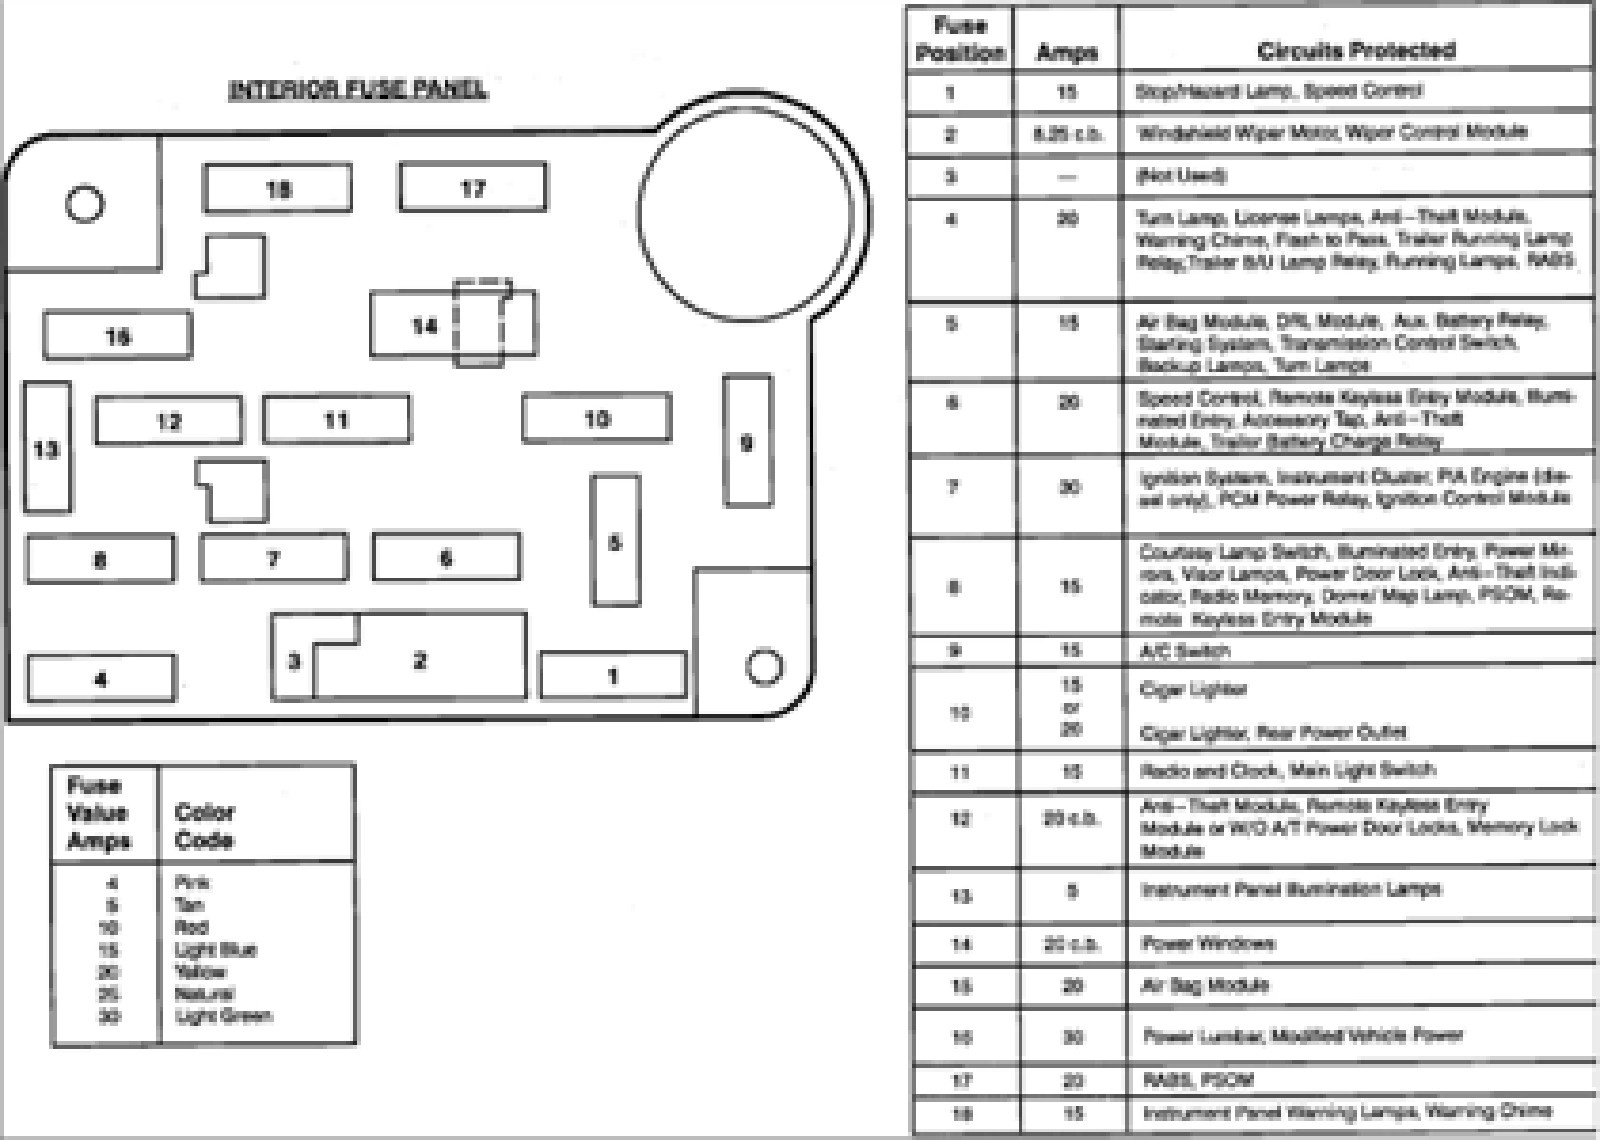 Ford E 150 Questions Fuse Diagram For A 1993 Ford Econoline Van 1997 Ford  Econoline Fuse Box Location 1997 Ford Van Fuse Diagram